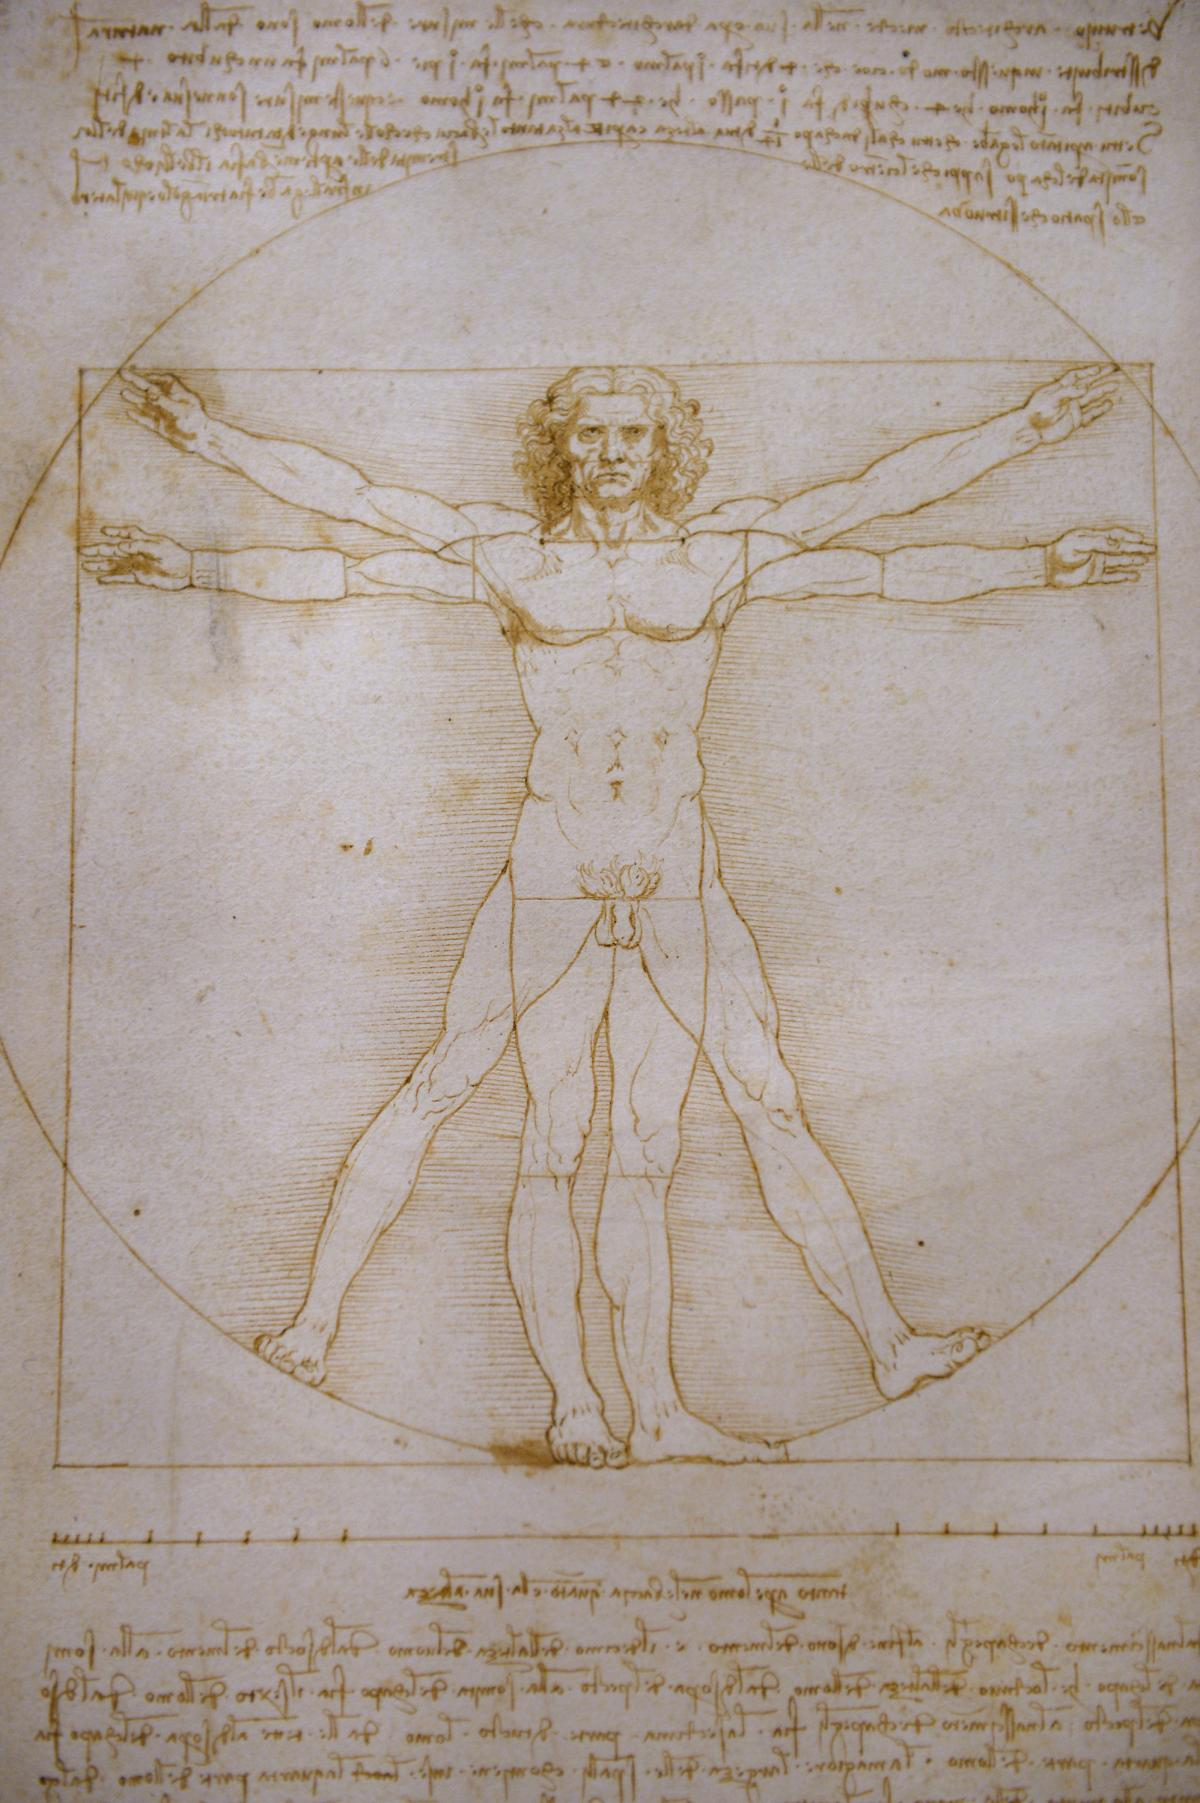 """One of Leonardo da Vinci's most famous drawings, """"Vitruvian Man,"""" is rarely displayed due to its fragility. It is part of the Louvre exhibition, following an unsuccessful, last-minute attempt to stop its transport from Italy to Paris."""